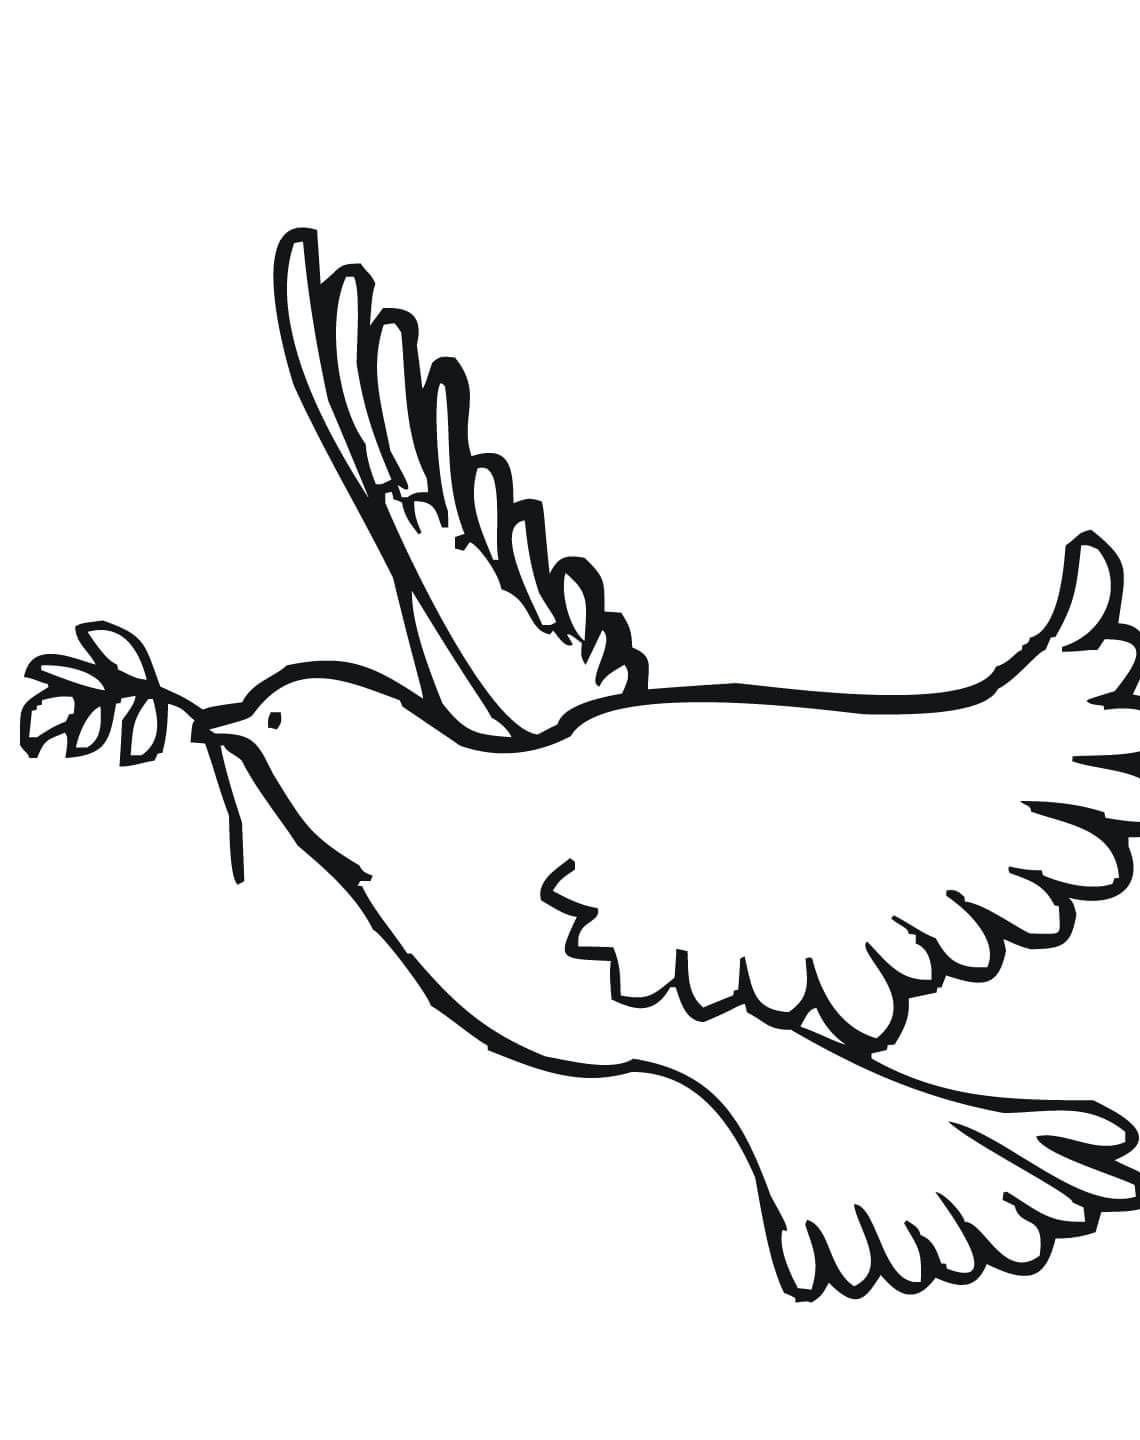 file name peace dove coloring page jpg resolution 1200 x 1600